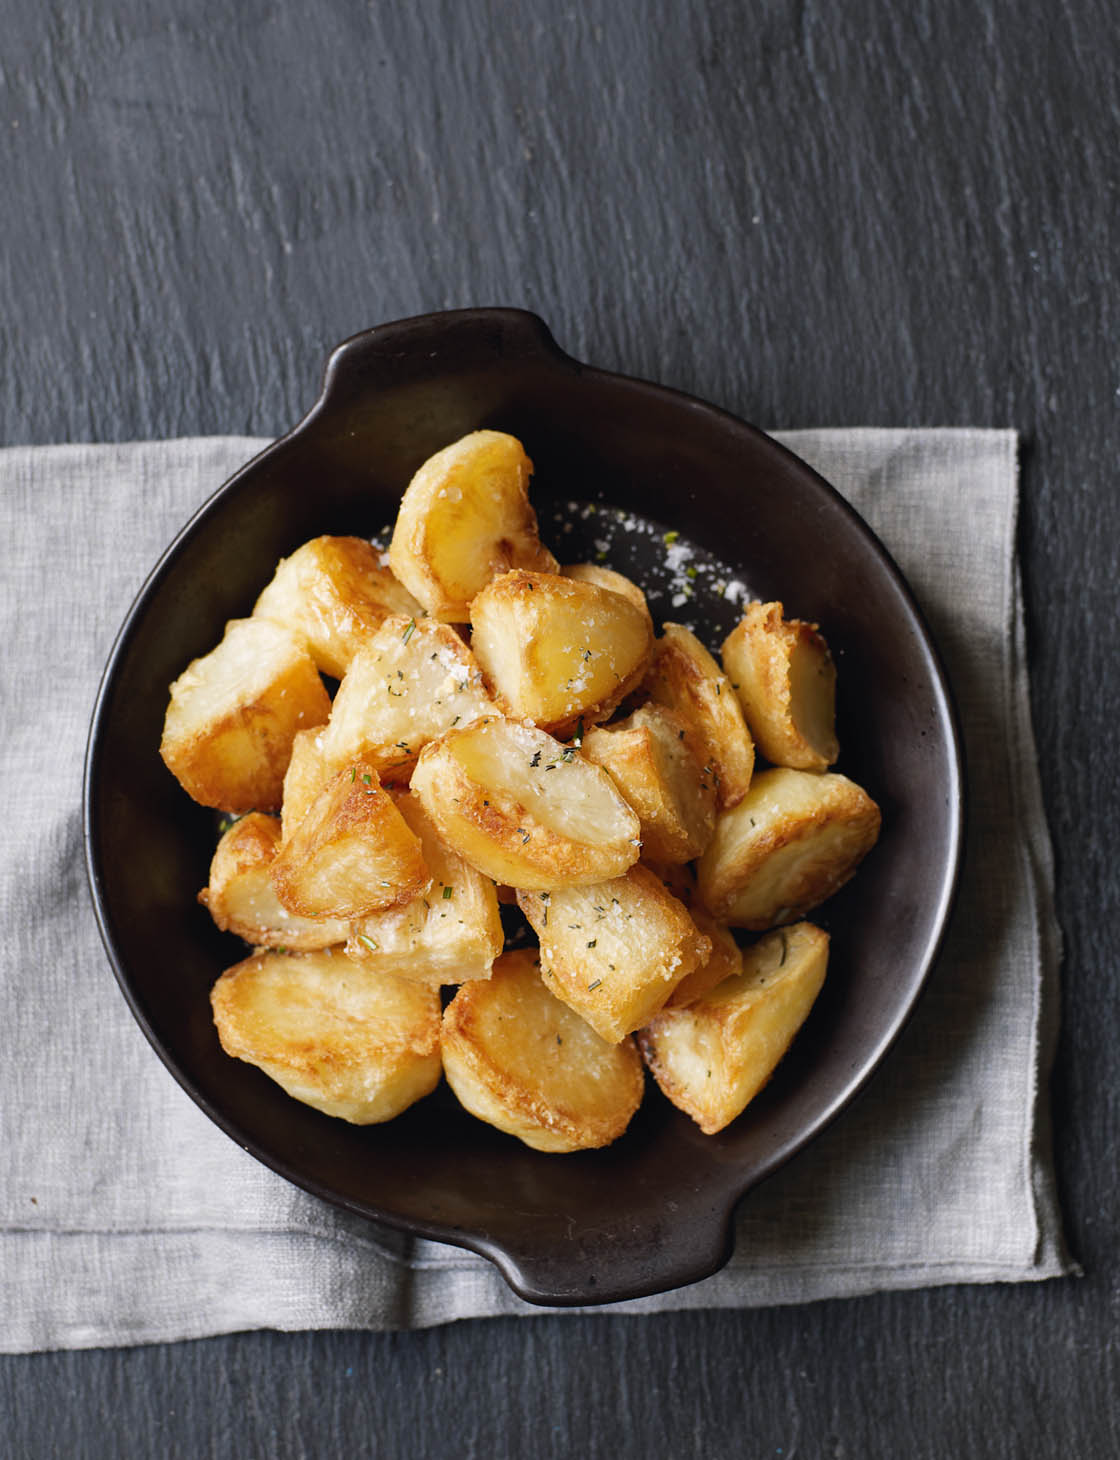 Cooking Potatoes Before freezing